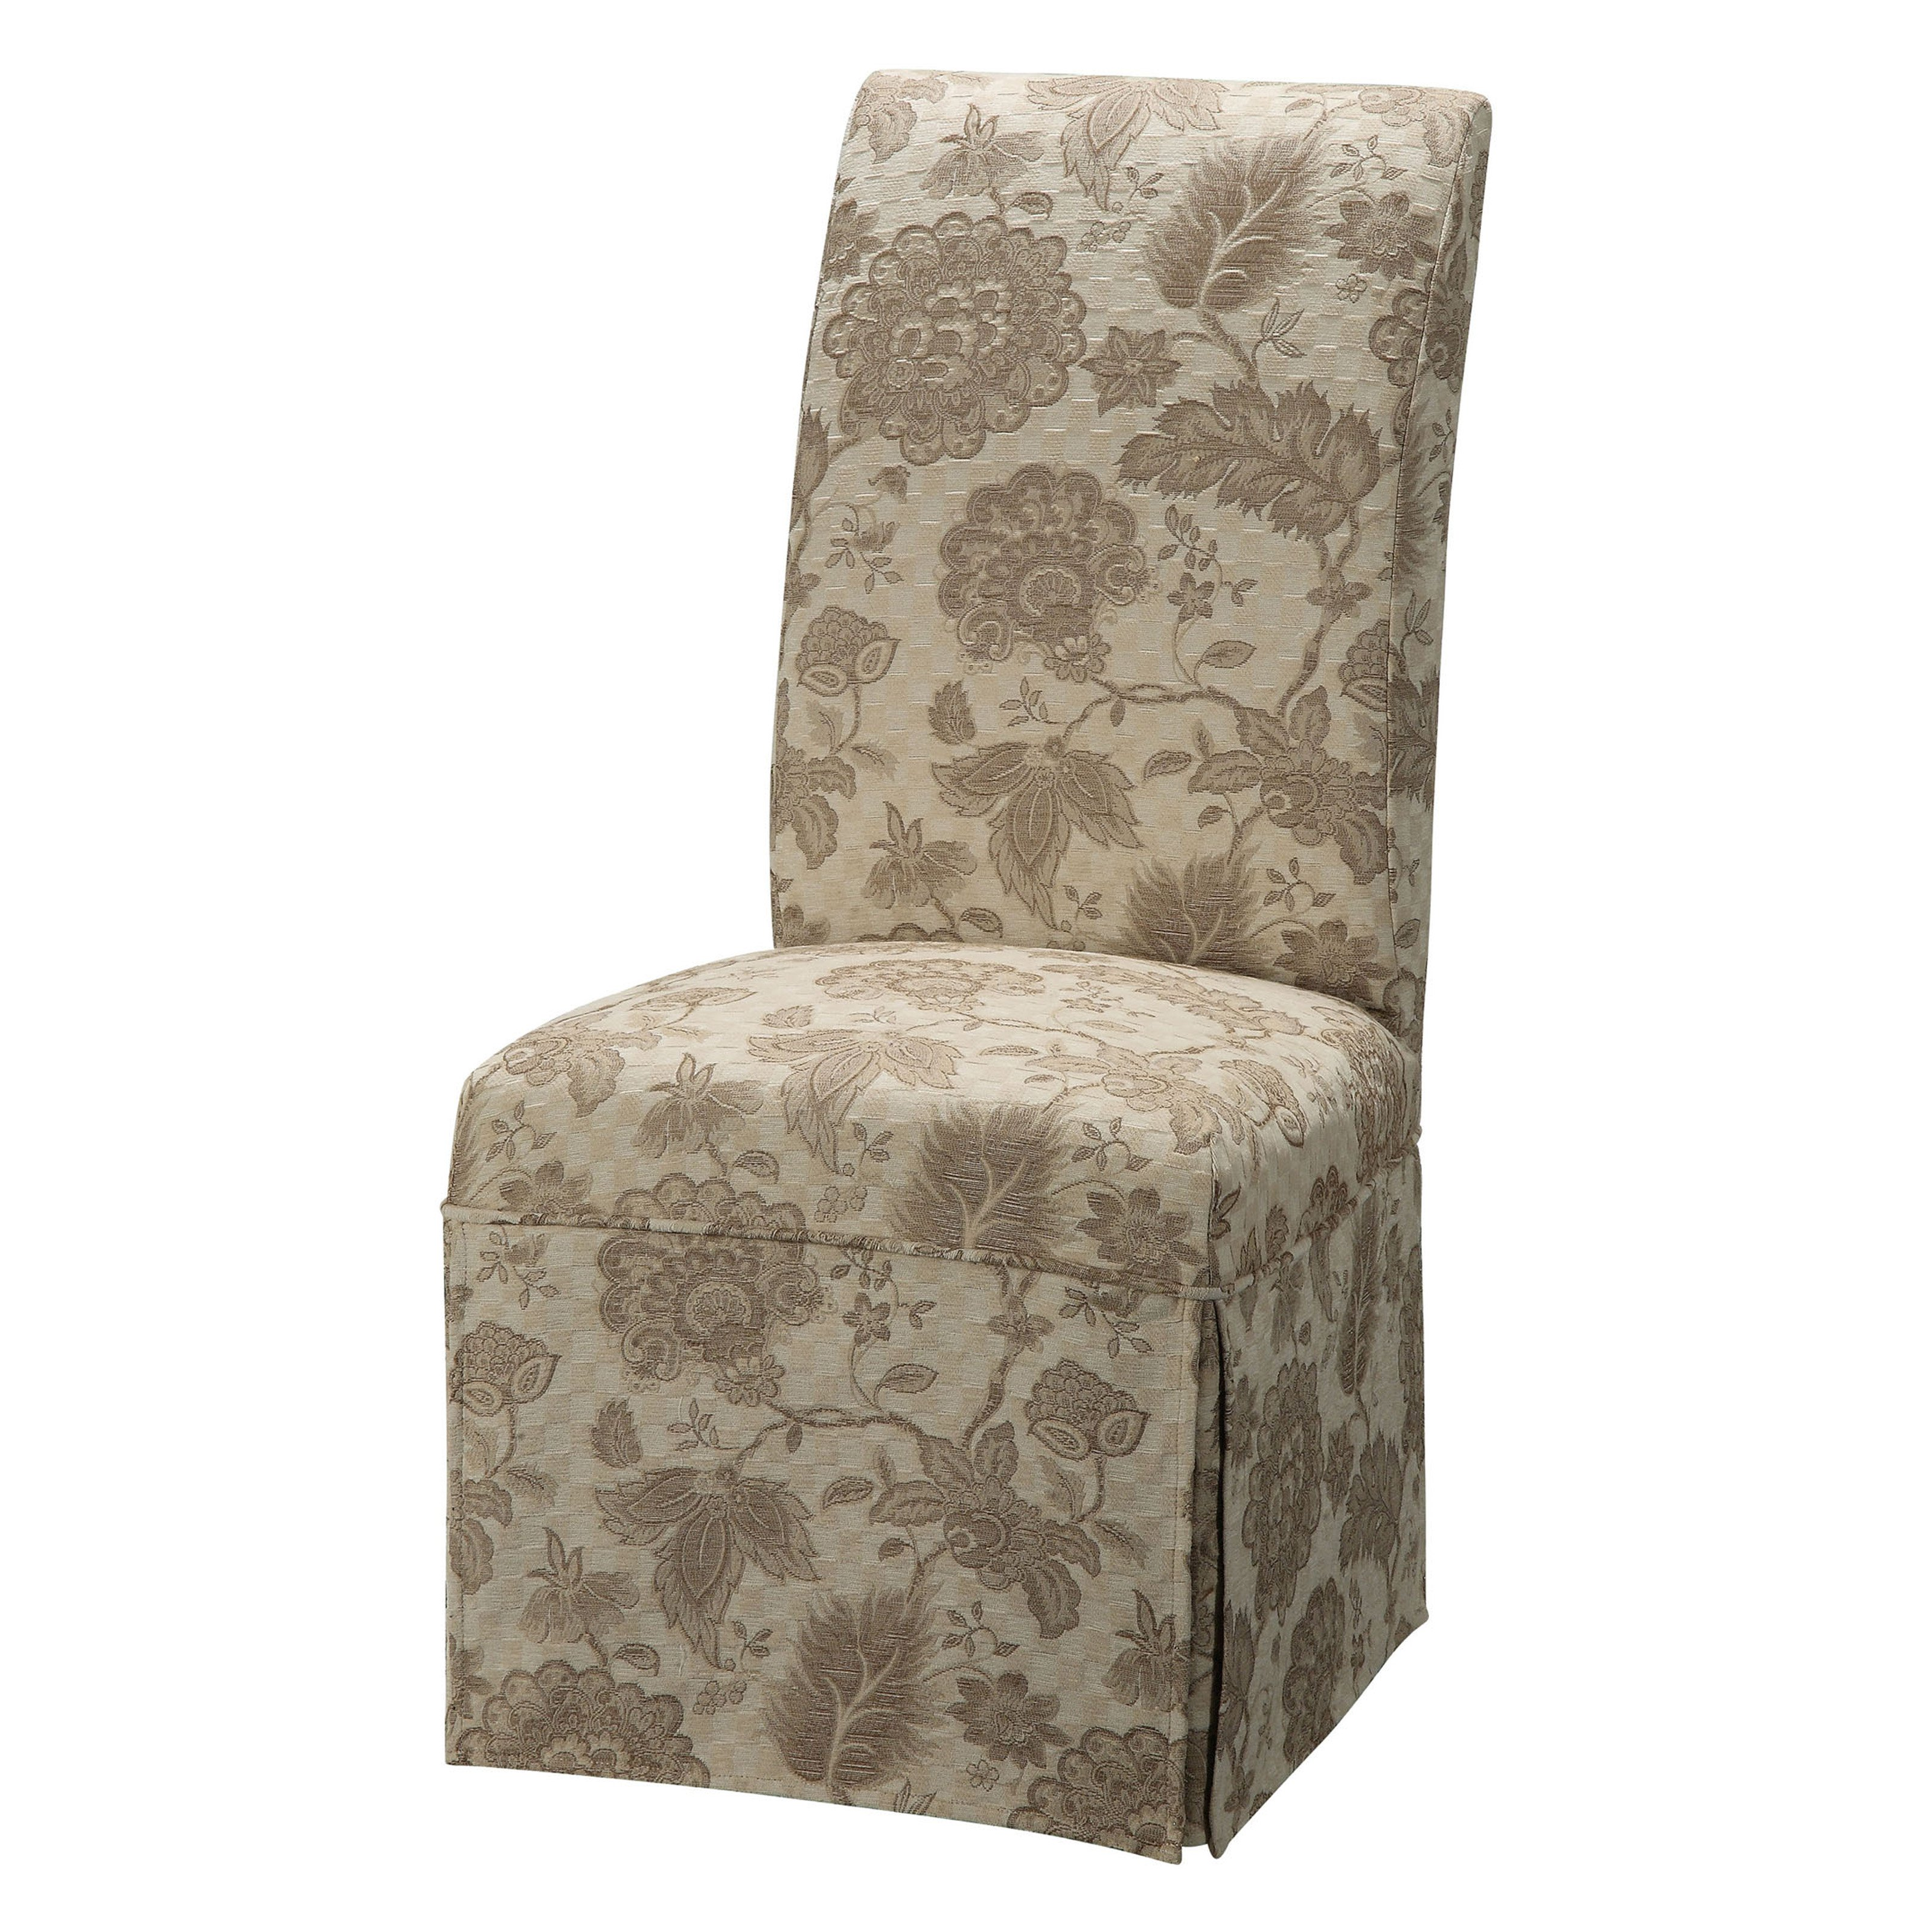 Collection Dining Room Chair Cover Pattern Patiofurn